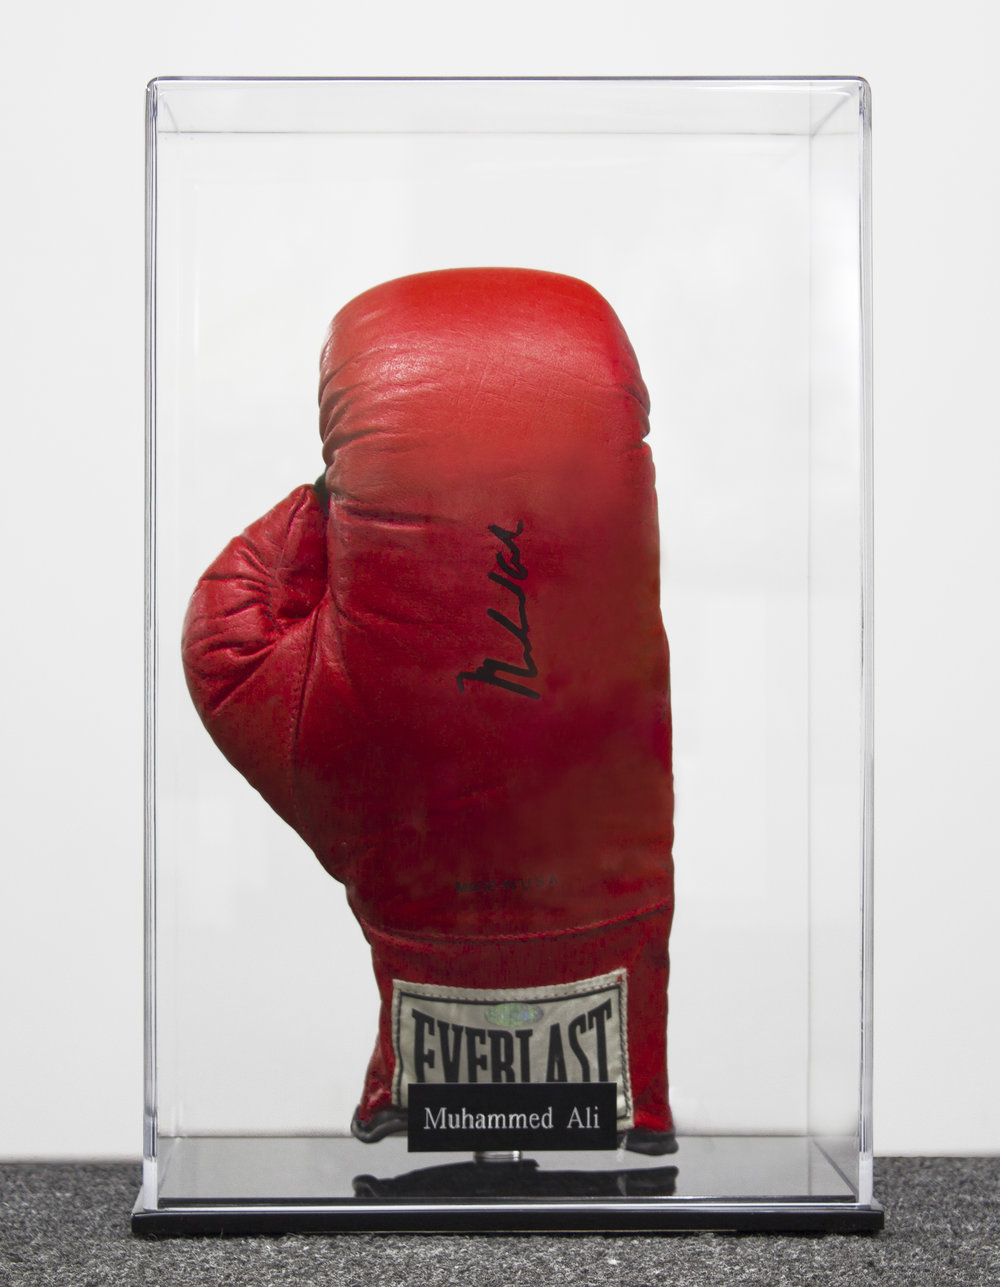 muhammed-ali-the-greatest-peters-gallery-memorabilia-framing-shadowbox-orange-county-los-angeles-irvine-costa-mesa-laguna-huntington-newport-tustin-long-beach.jpg